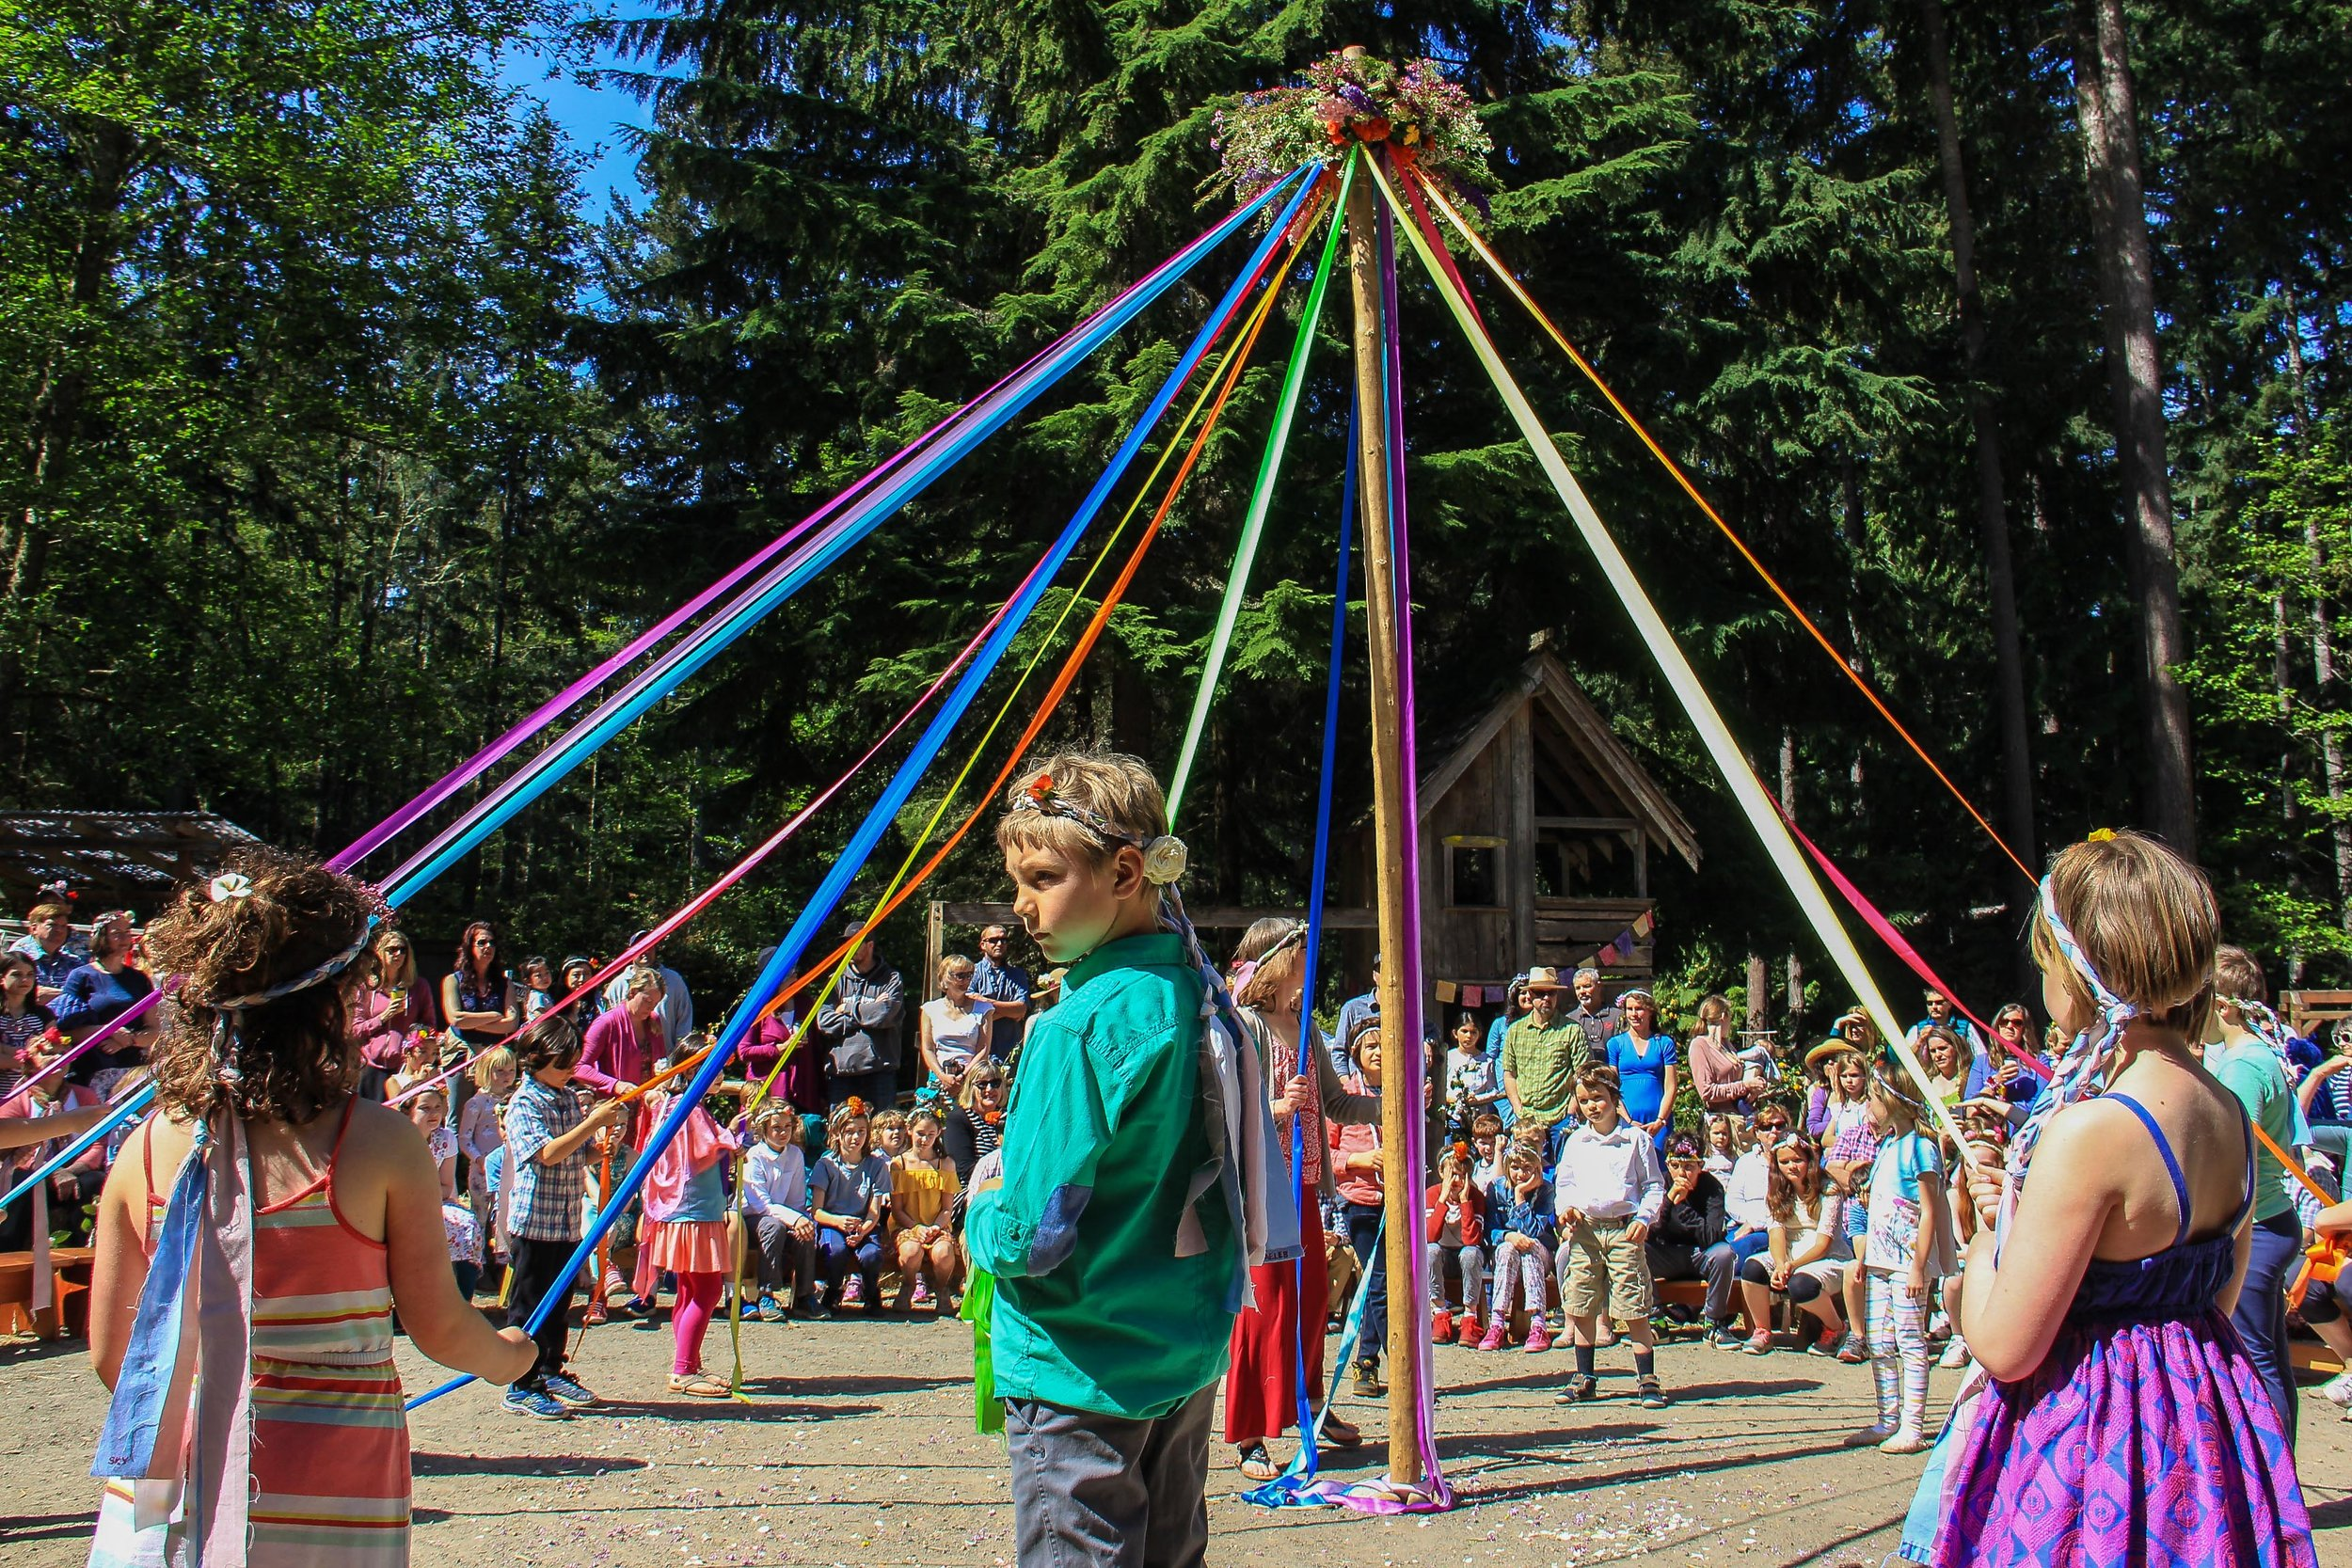 Please come to our lovely woodland campus and celebrate Spring! MayFaire is a festival day of rebirth and renewal, a time for singing and festooning the world with flowers. There are crafts, activities, and field games for the whole family; songs, food and, of course, the MayPole!